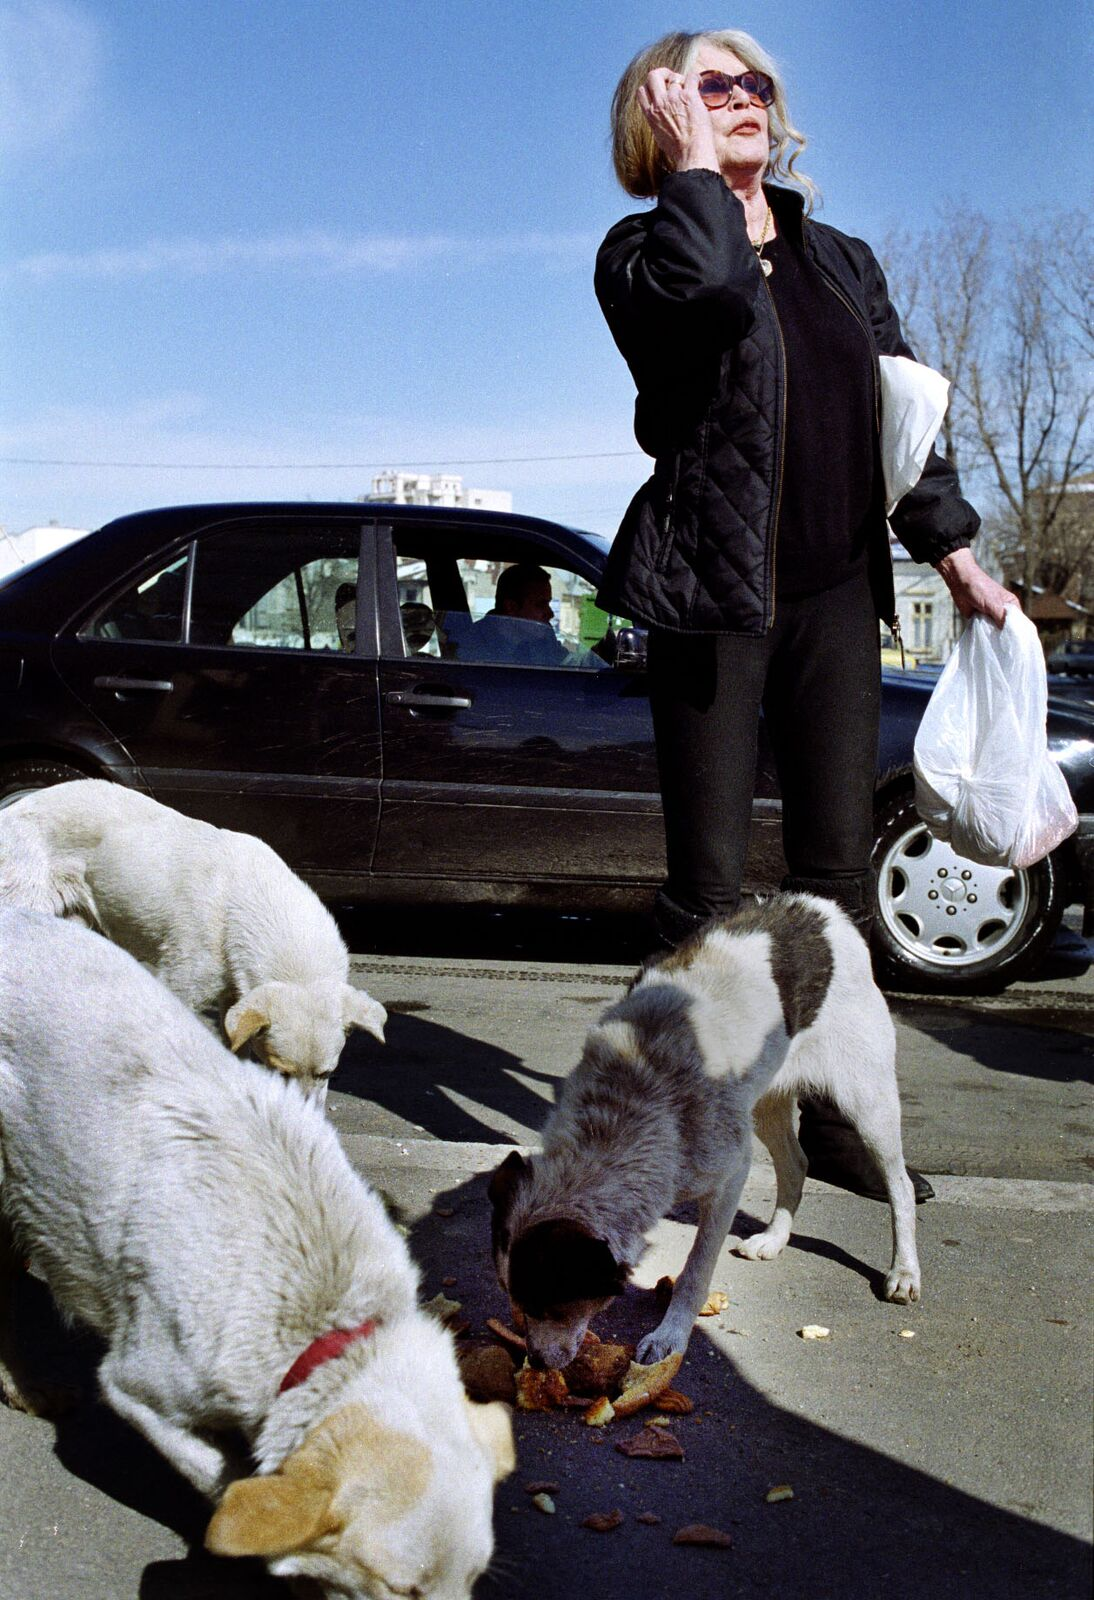 Brigitte Bardot donne du pain à des chiens, en Roumanie. | Photo : Getty Images